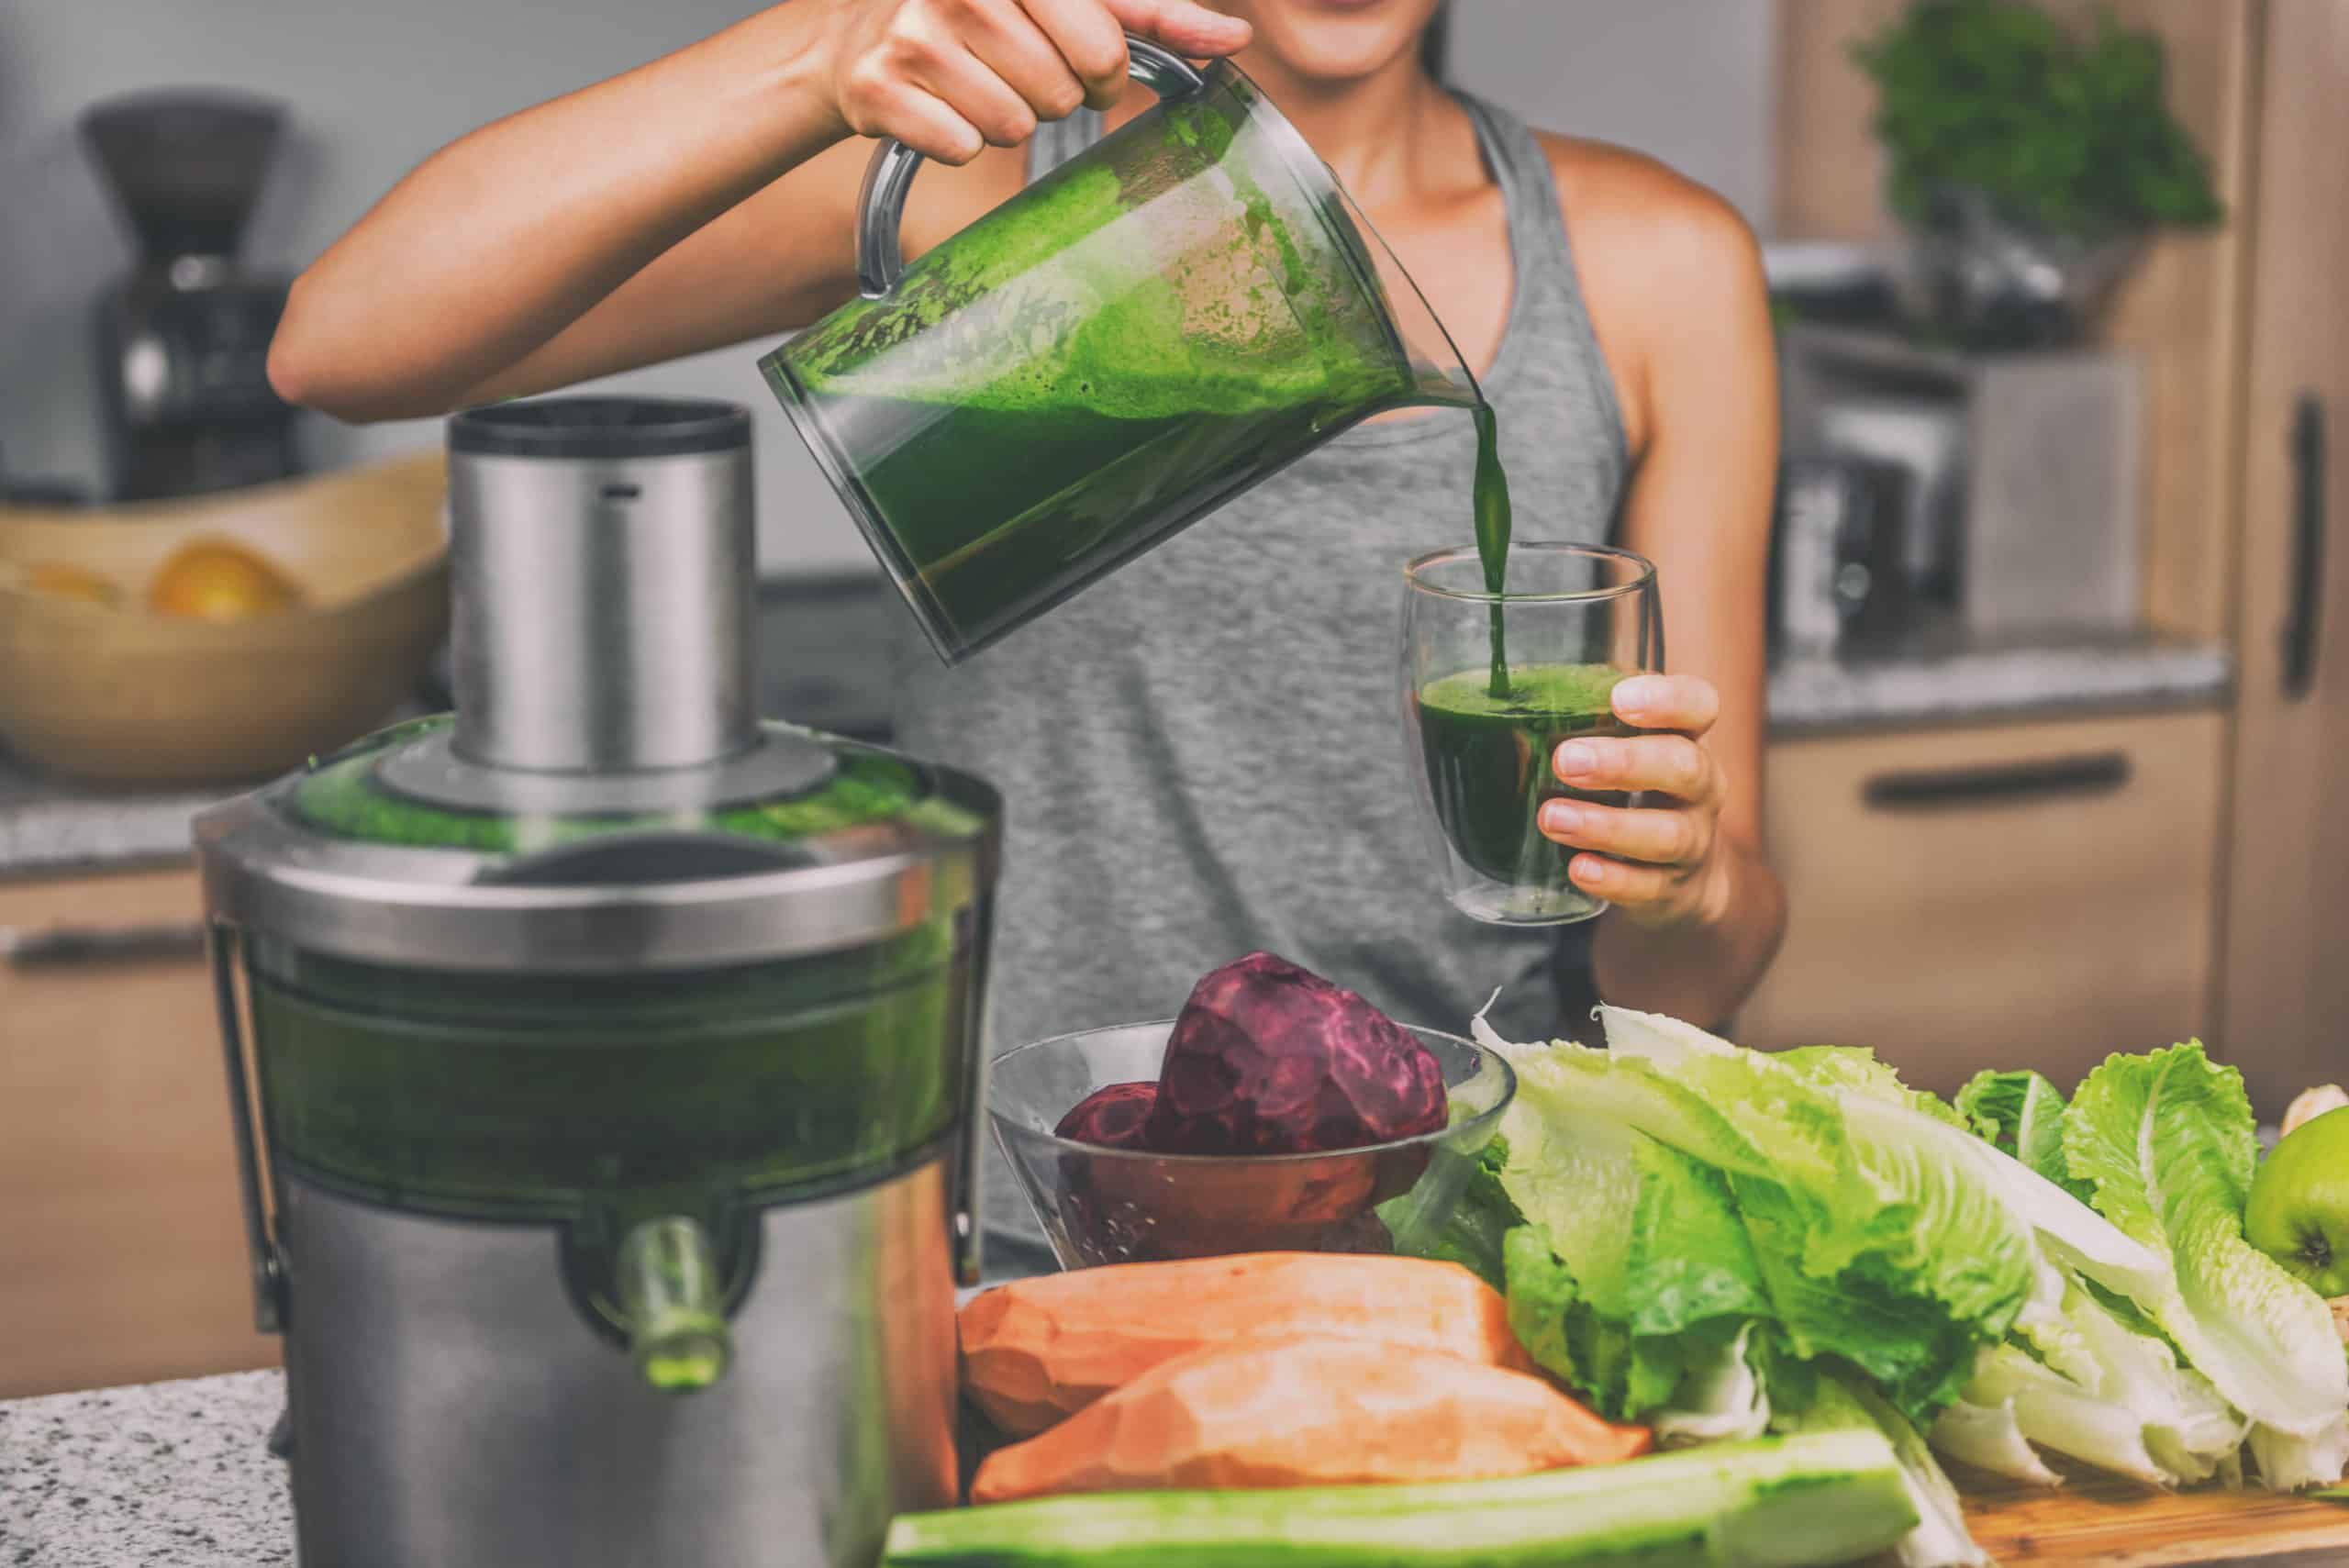 Most Nutritious Vegetables to Juice